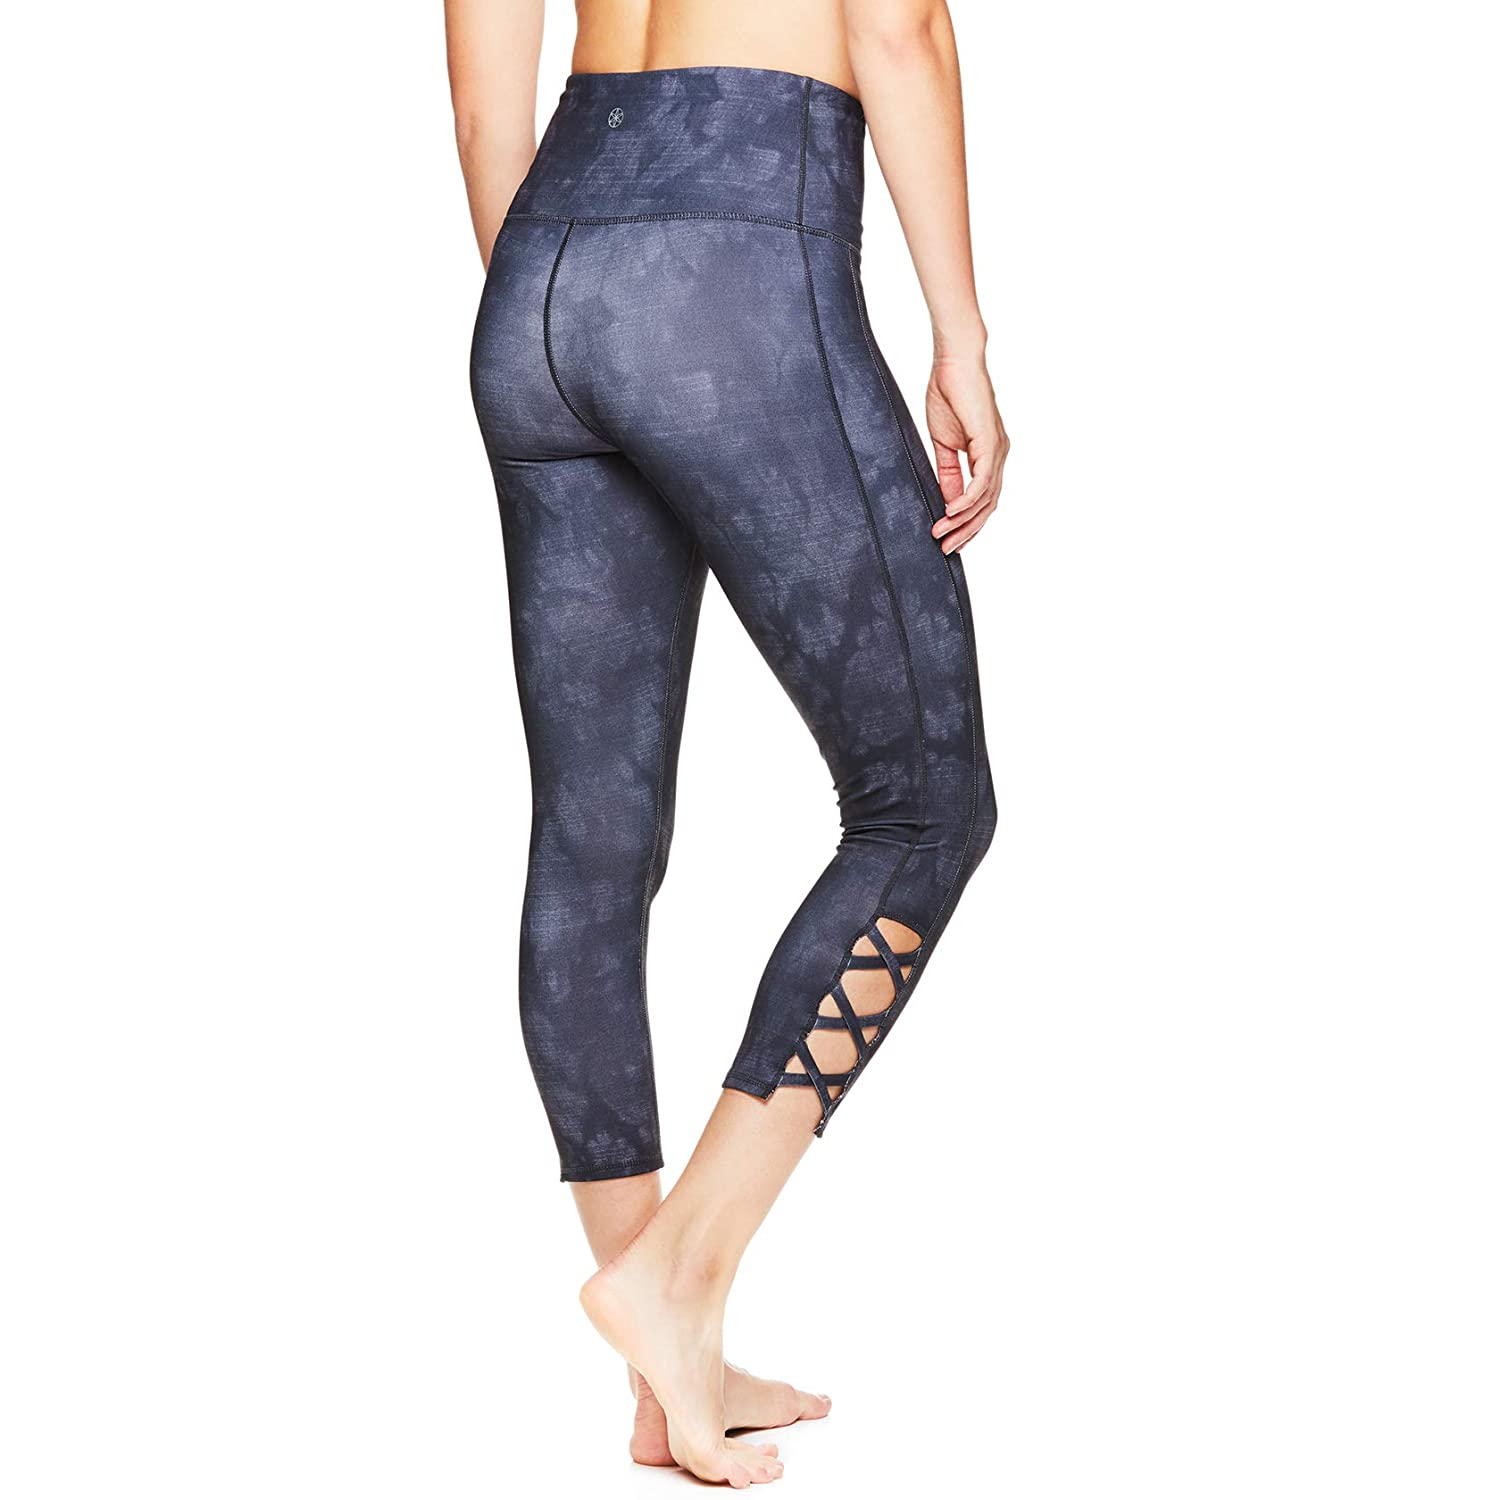 8e3af622db6e Amazon.com  Gaiam Women s High Rise Waist Capri Yoga Pants - Performance  Spandex Compression Leggings  Clothing